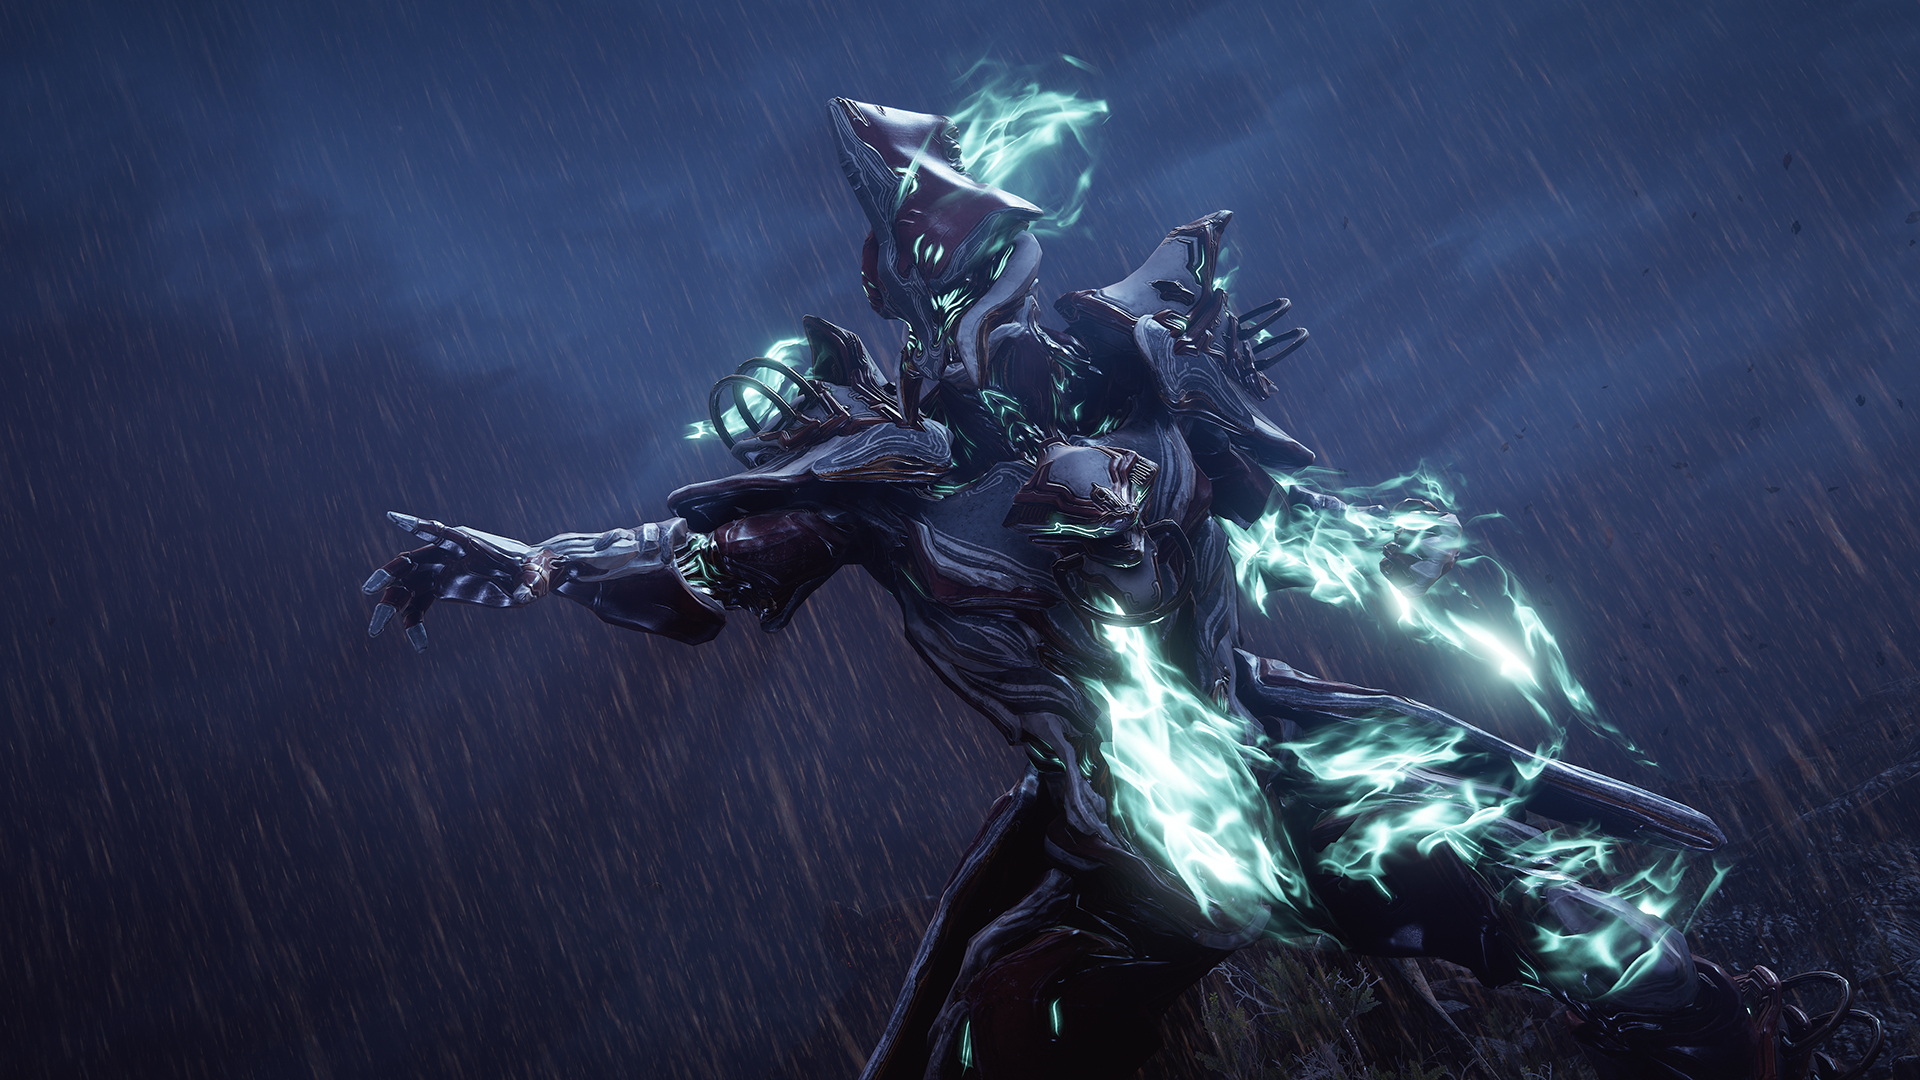 warframe giveaway 2019 warframe massively overpowered 2844